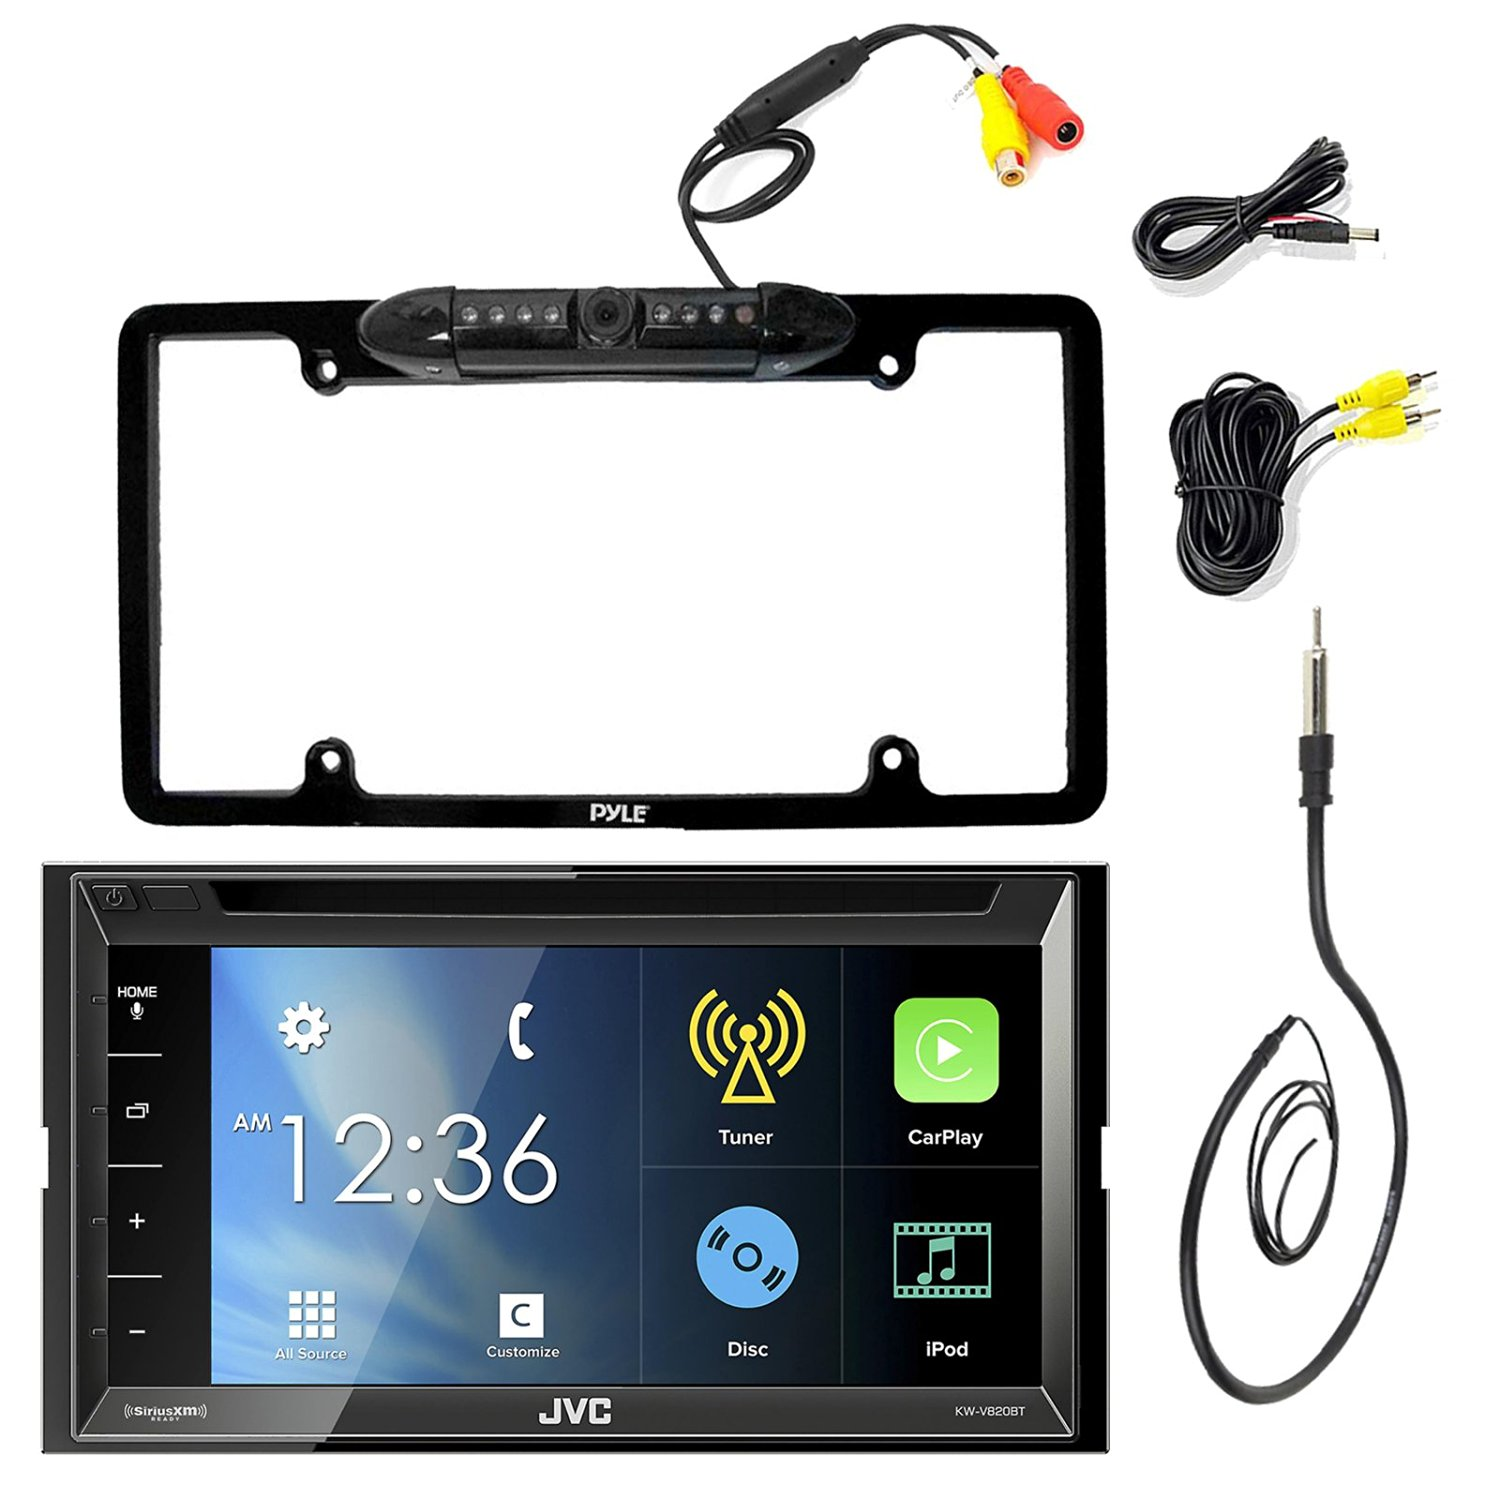 "JVC KW-V820BT 6.8"" Inch Double DIN Car CD DVD USB Bluetooth Stereo Receiver Bundle Combo With Kenwood Rearview Wide Angle View Backup Camera, Enrock 22"" AM/FM Radio Antenna"